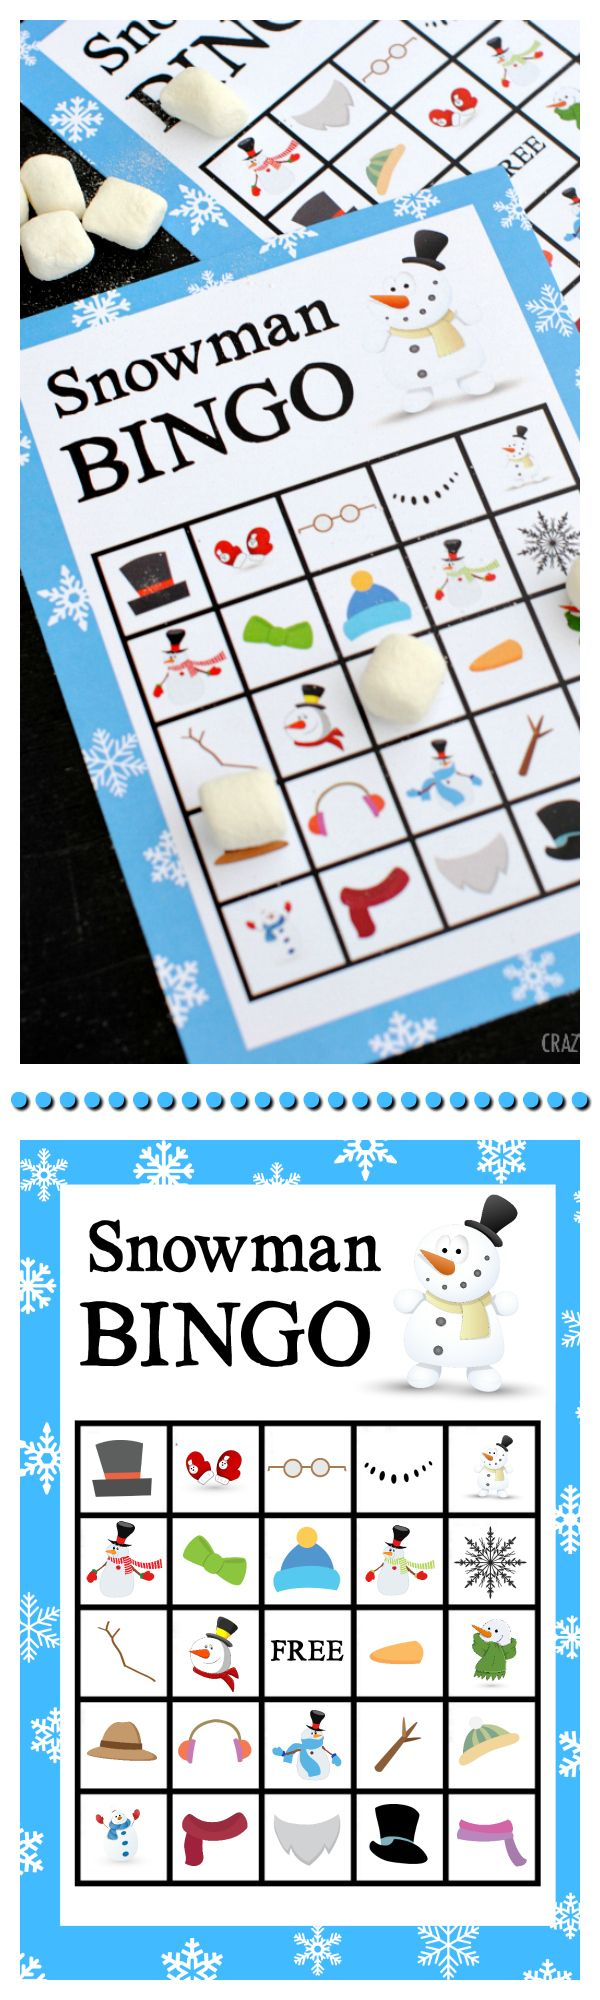 Snowman Bingo Game                                                                                                                                                      More